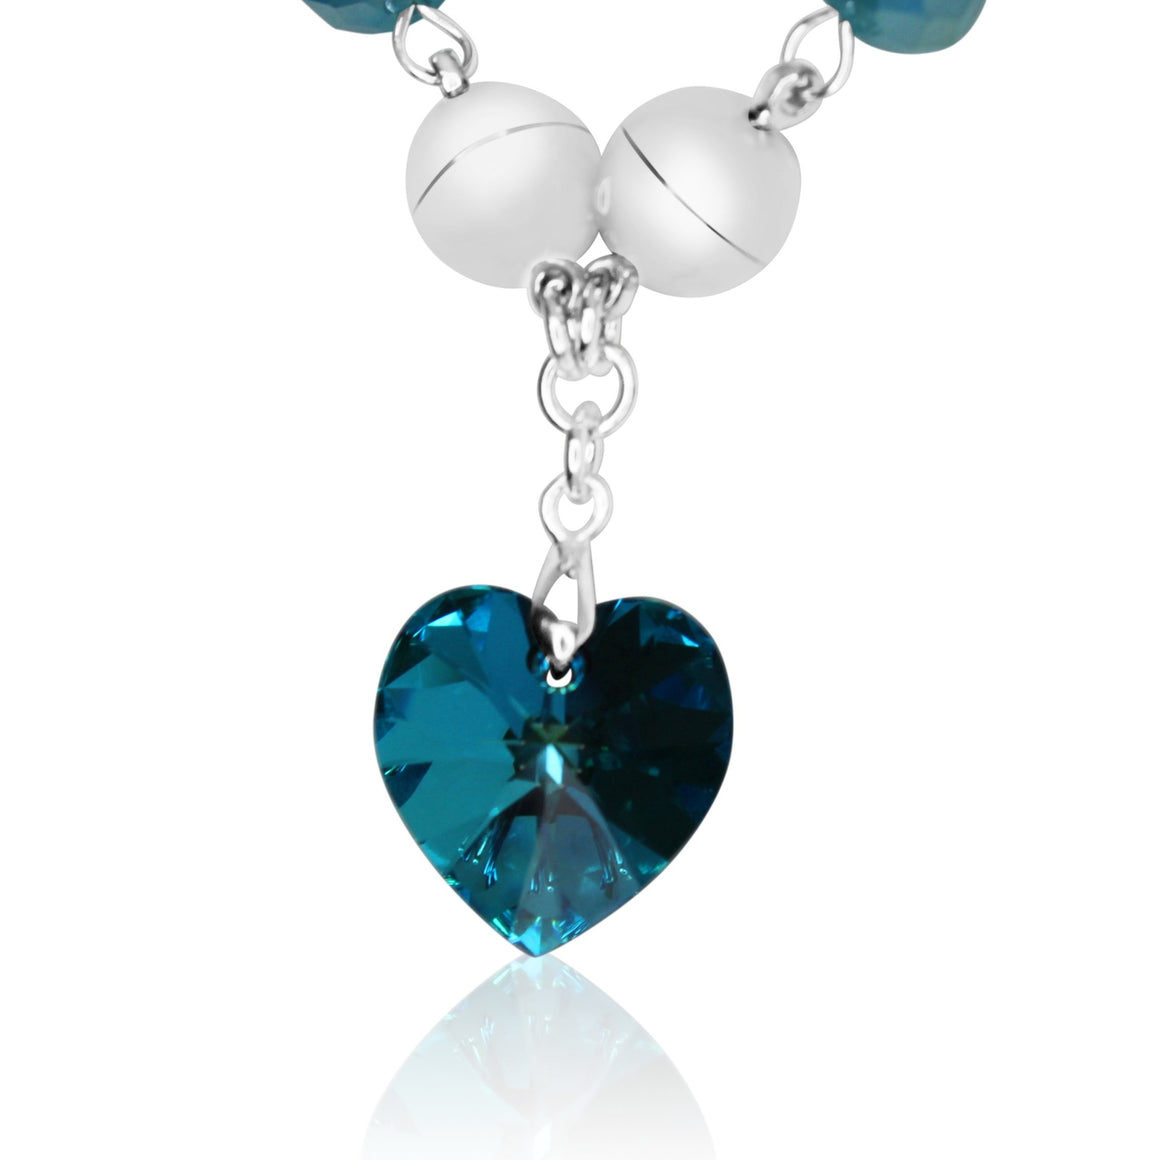 Swarovski Small Heart pendant - Turquoise - choose magnet colour